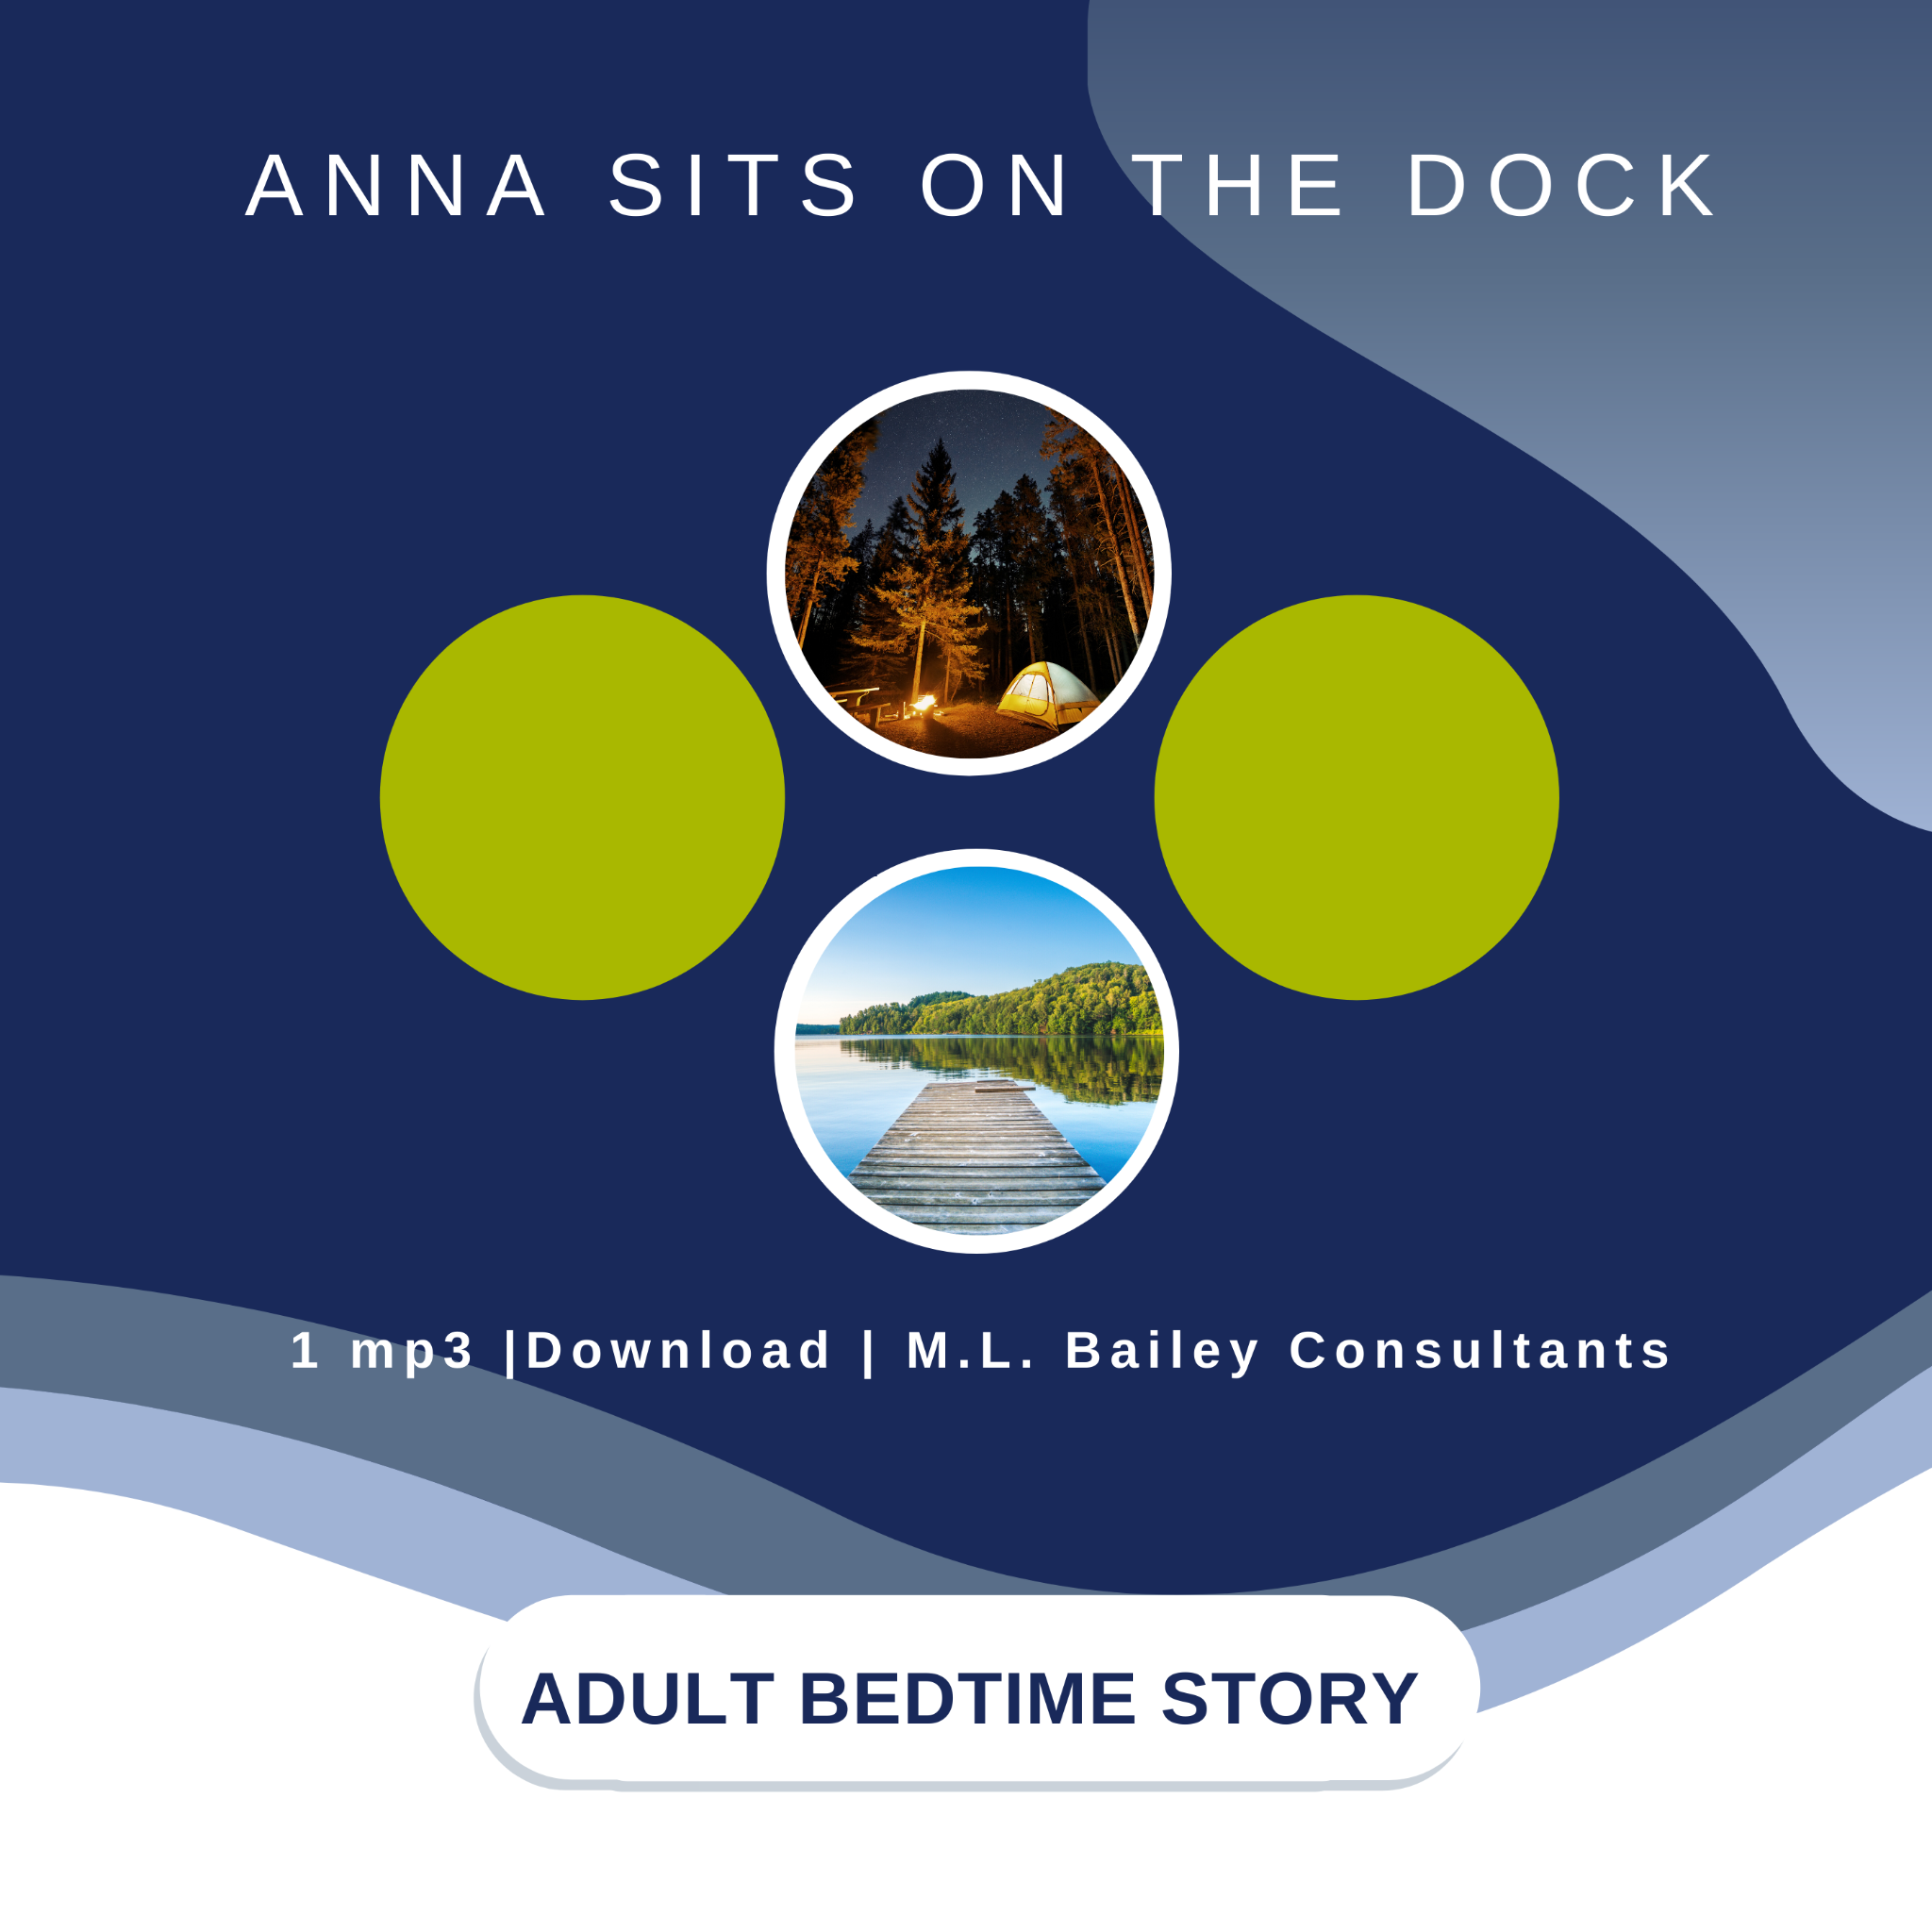 Anna Sits on the Dock